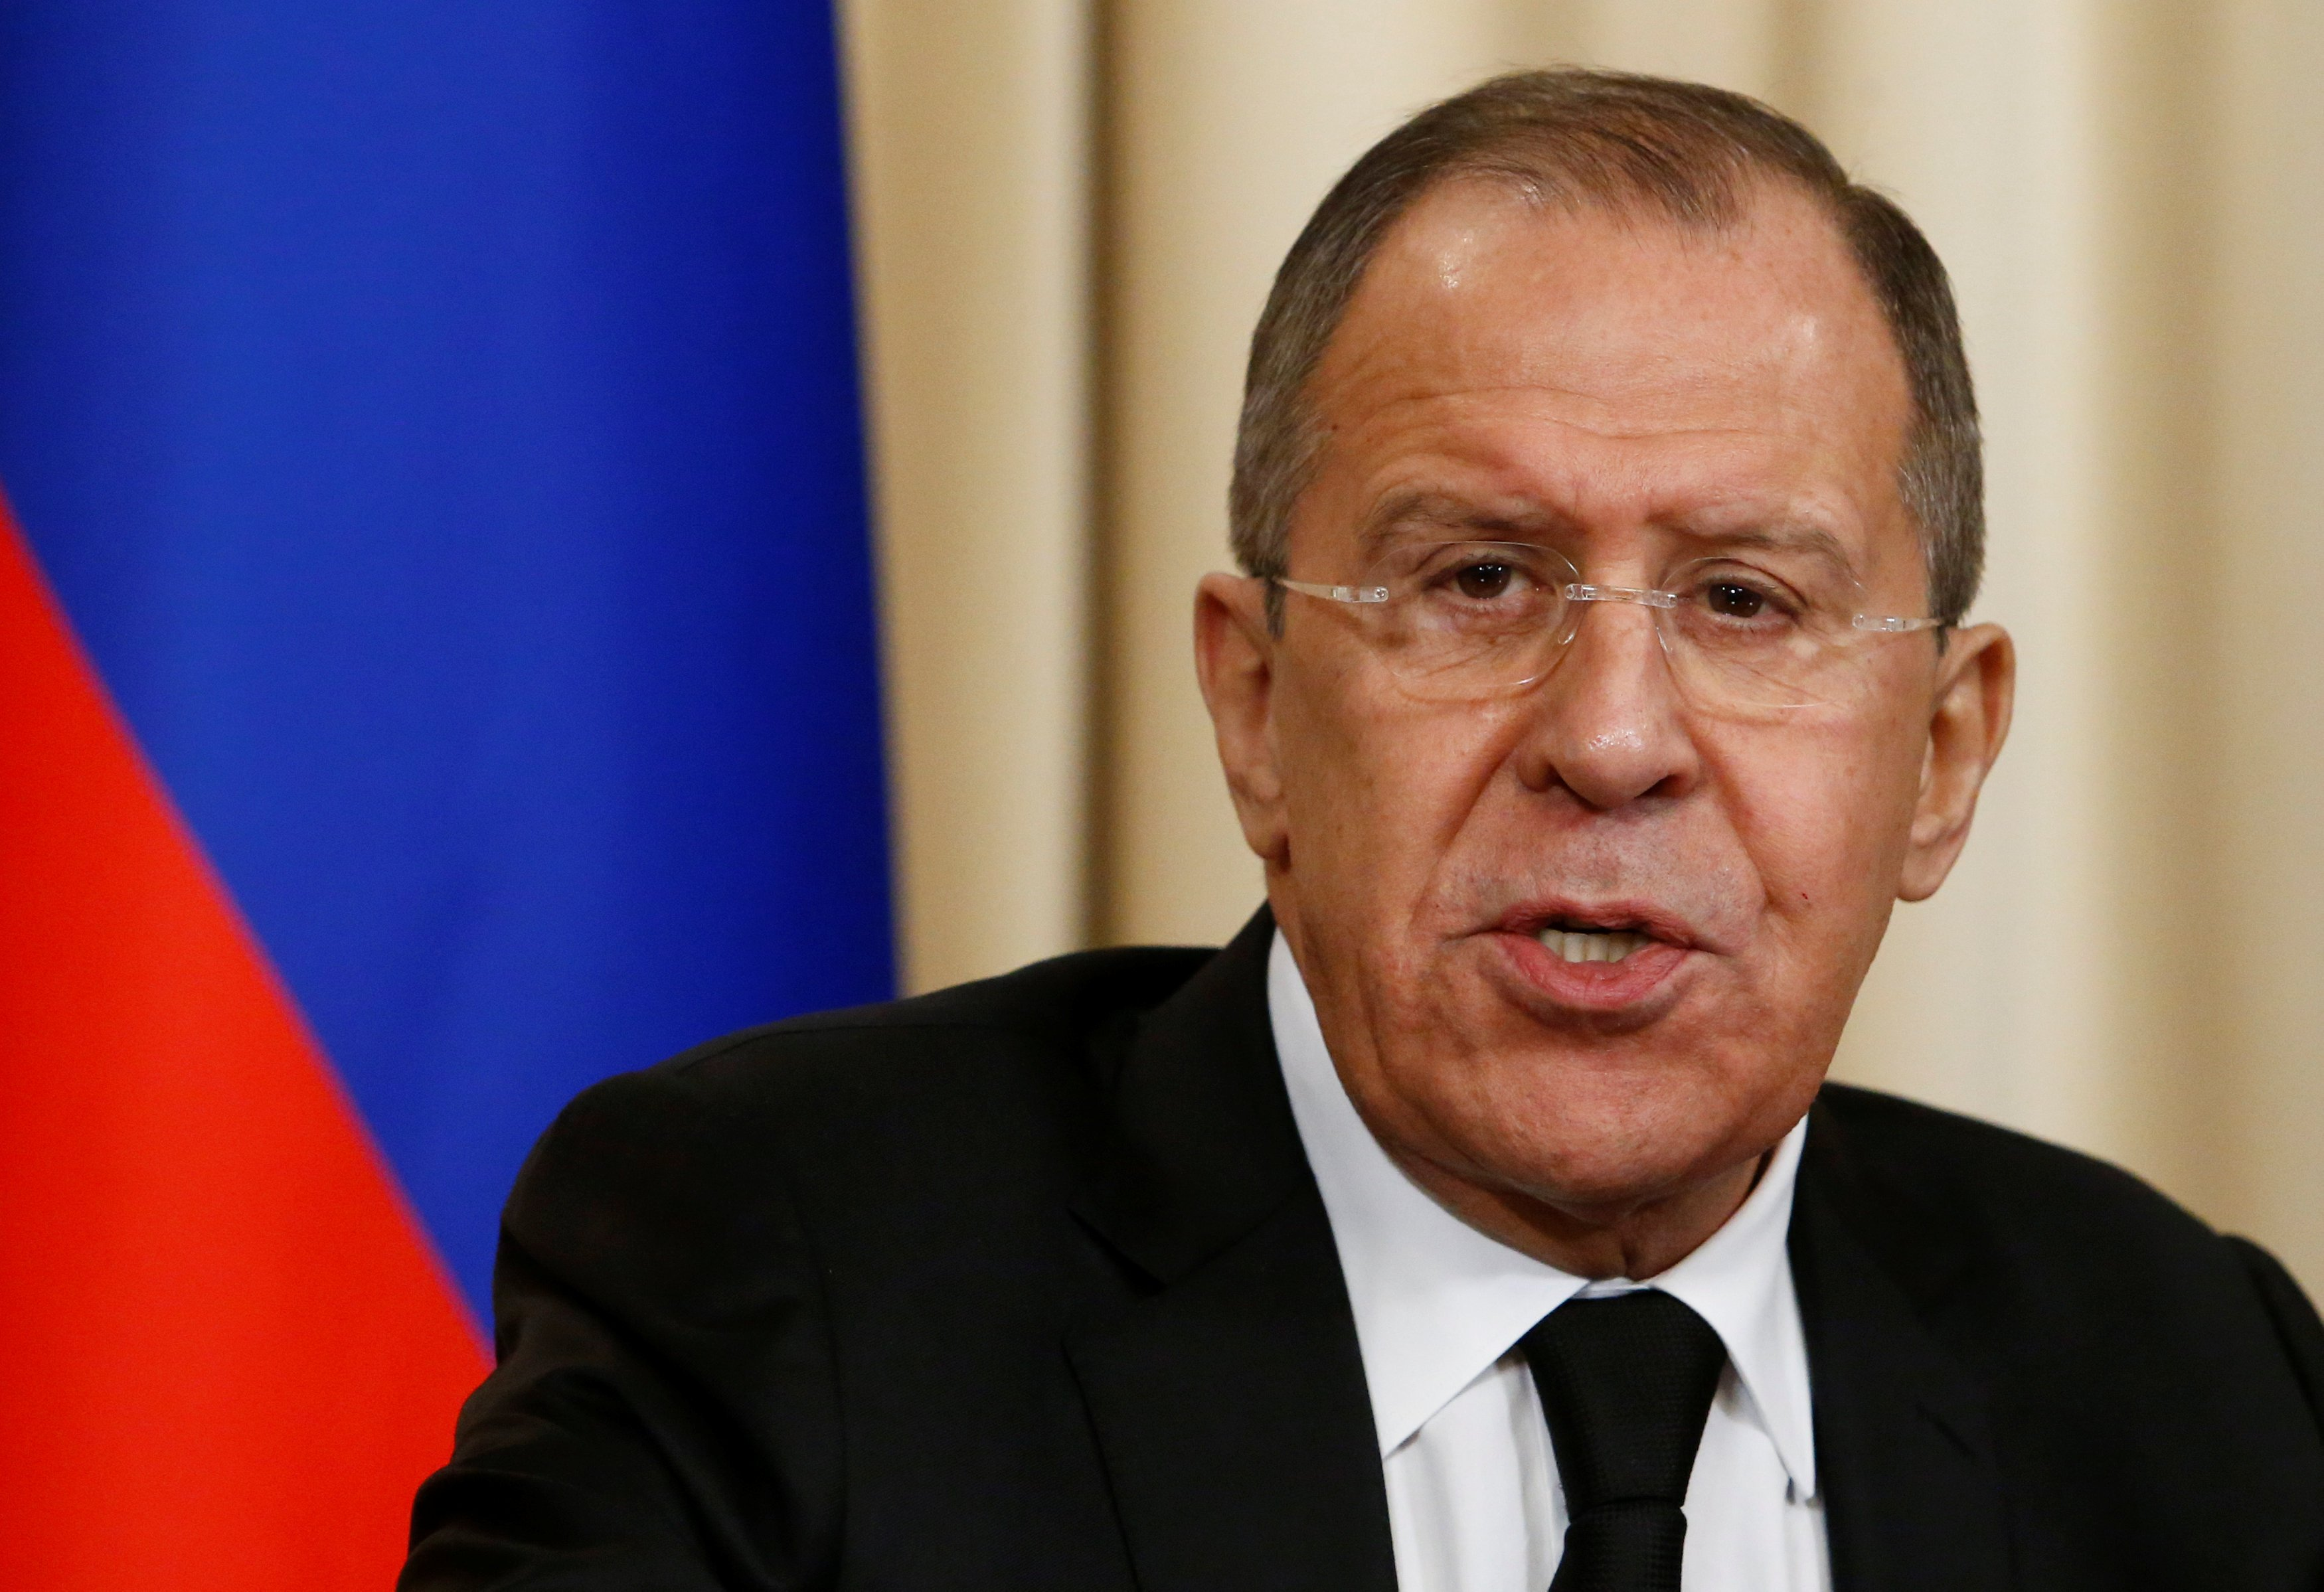 Russia's Lavrov heads to Finland, Alaska for Arctic talks